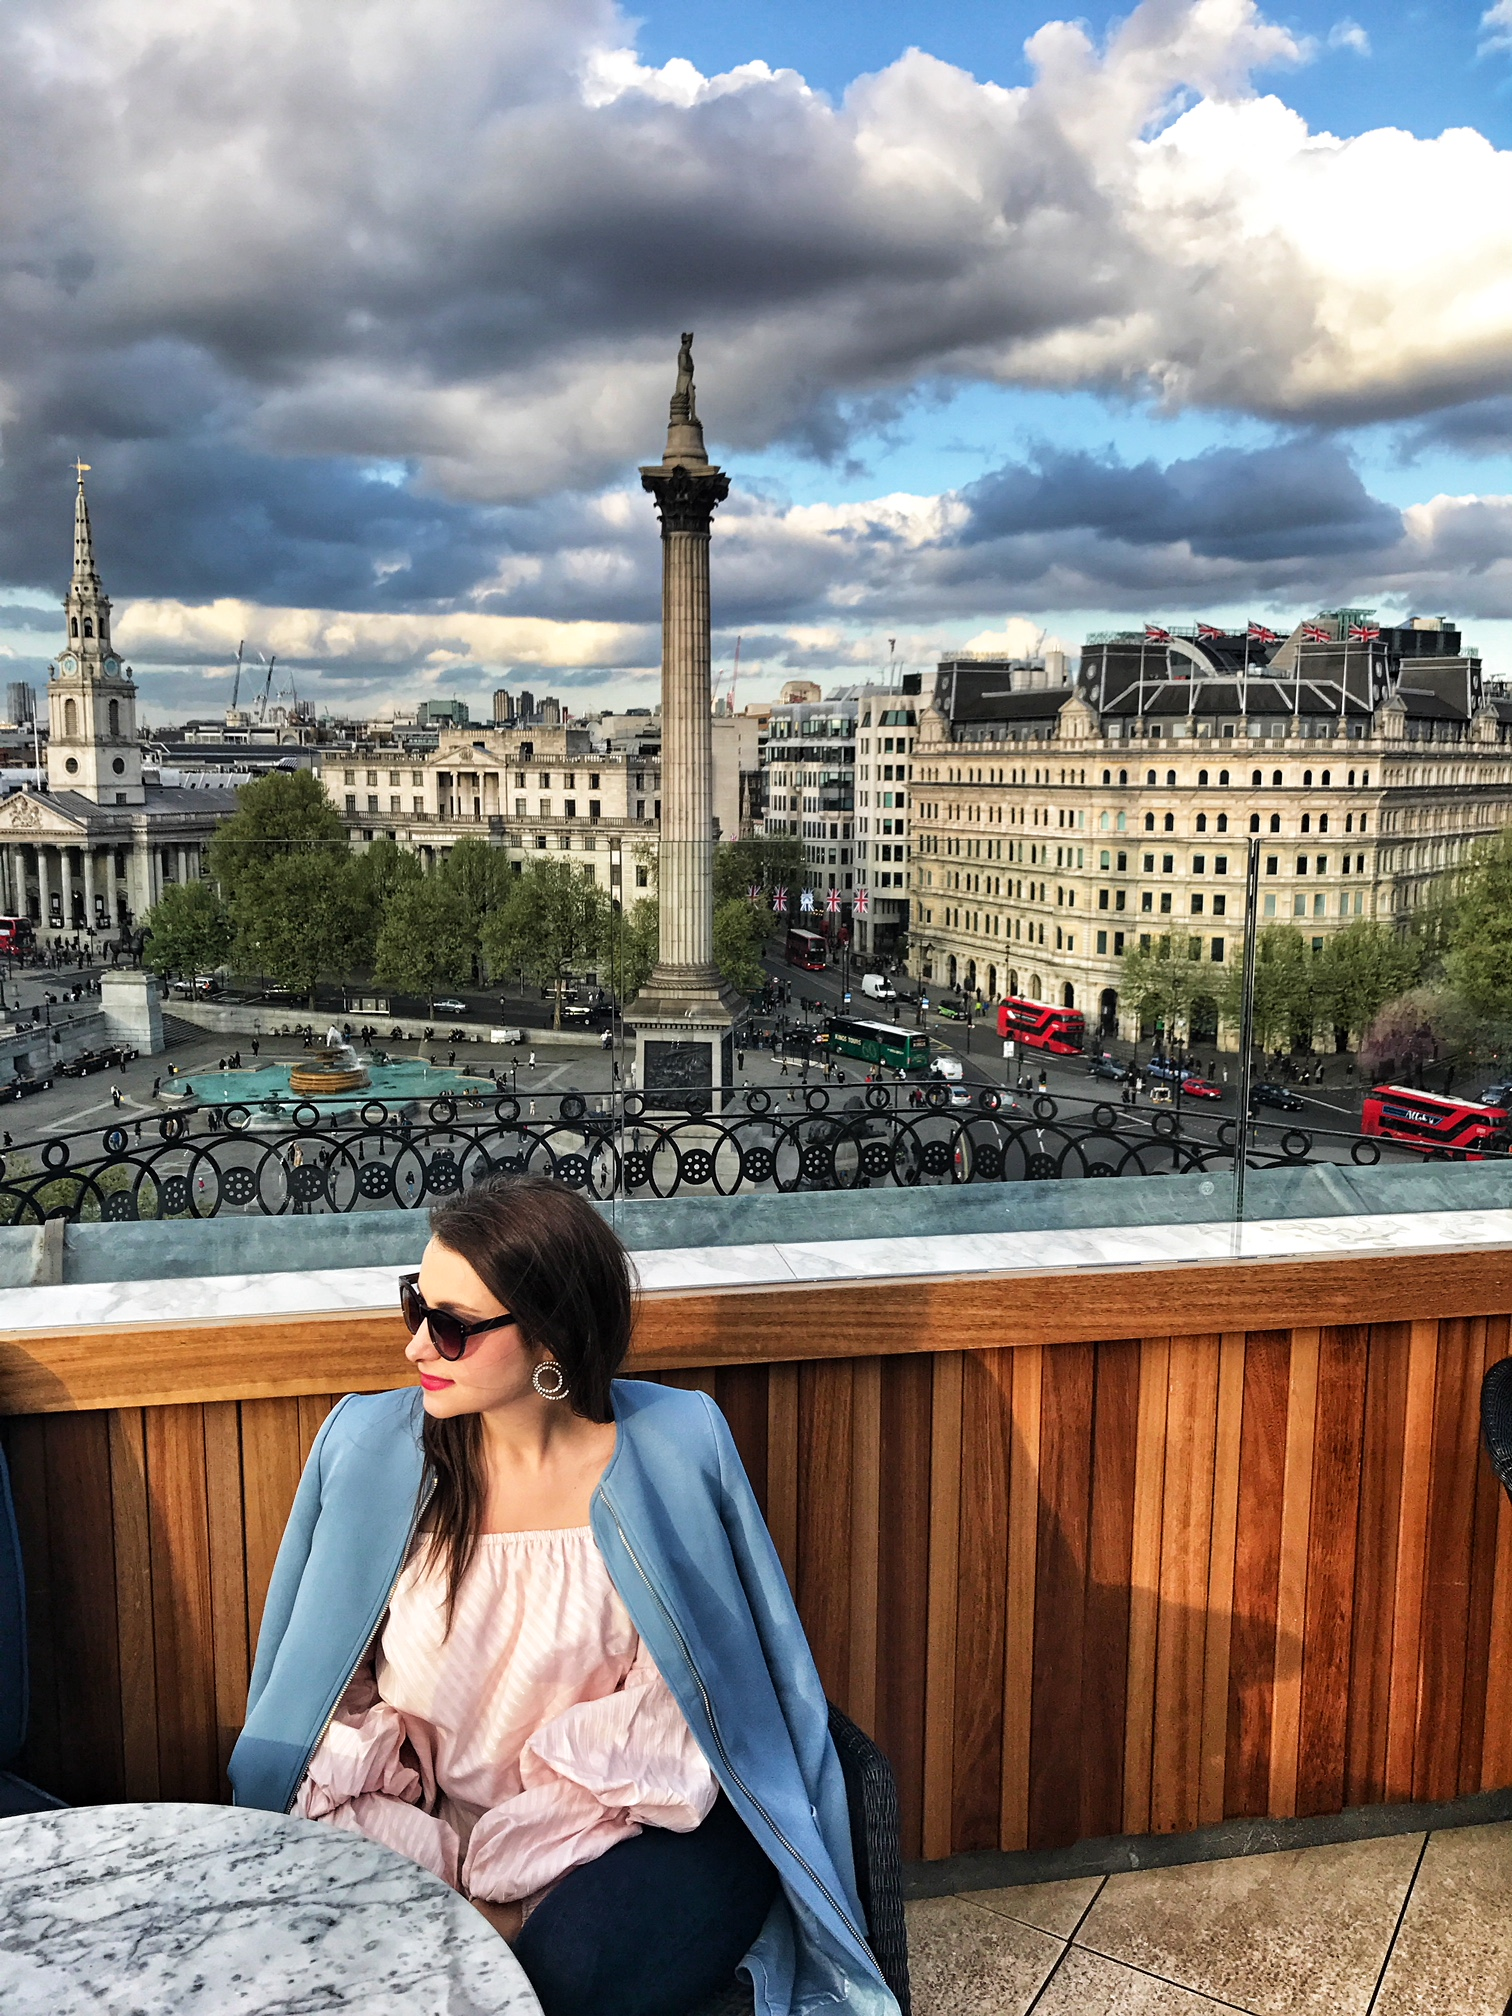 The Trafalgar St. James, most instagrammable places in london, the-alyst.com